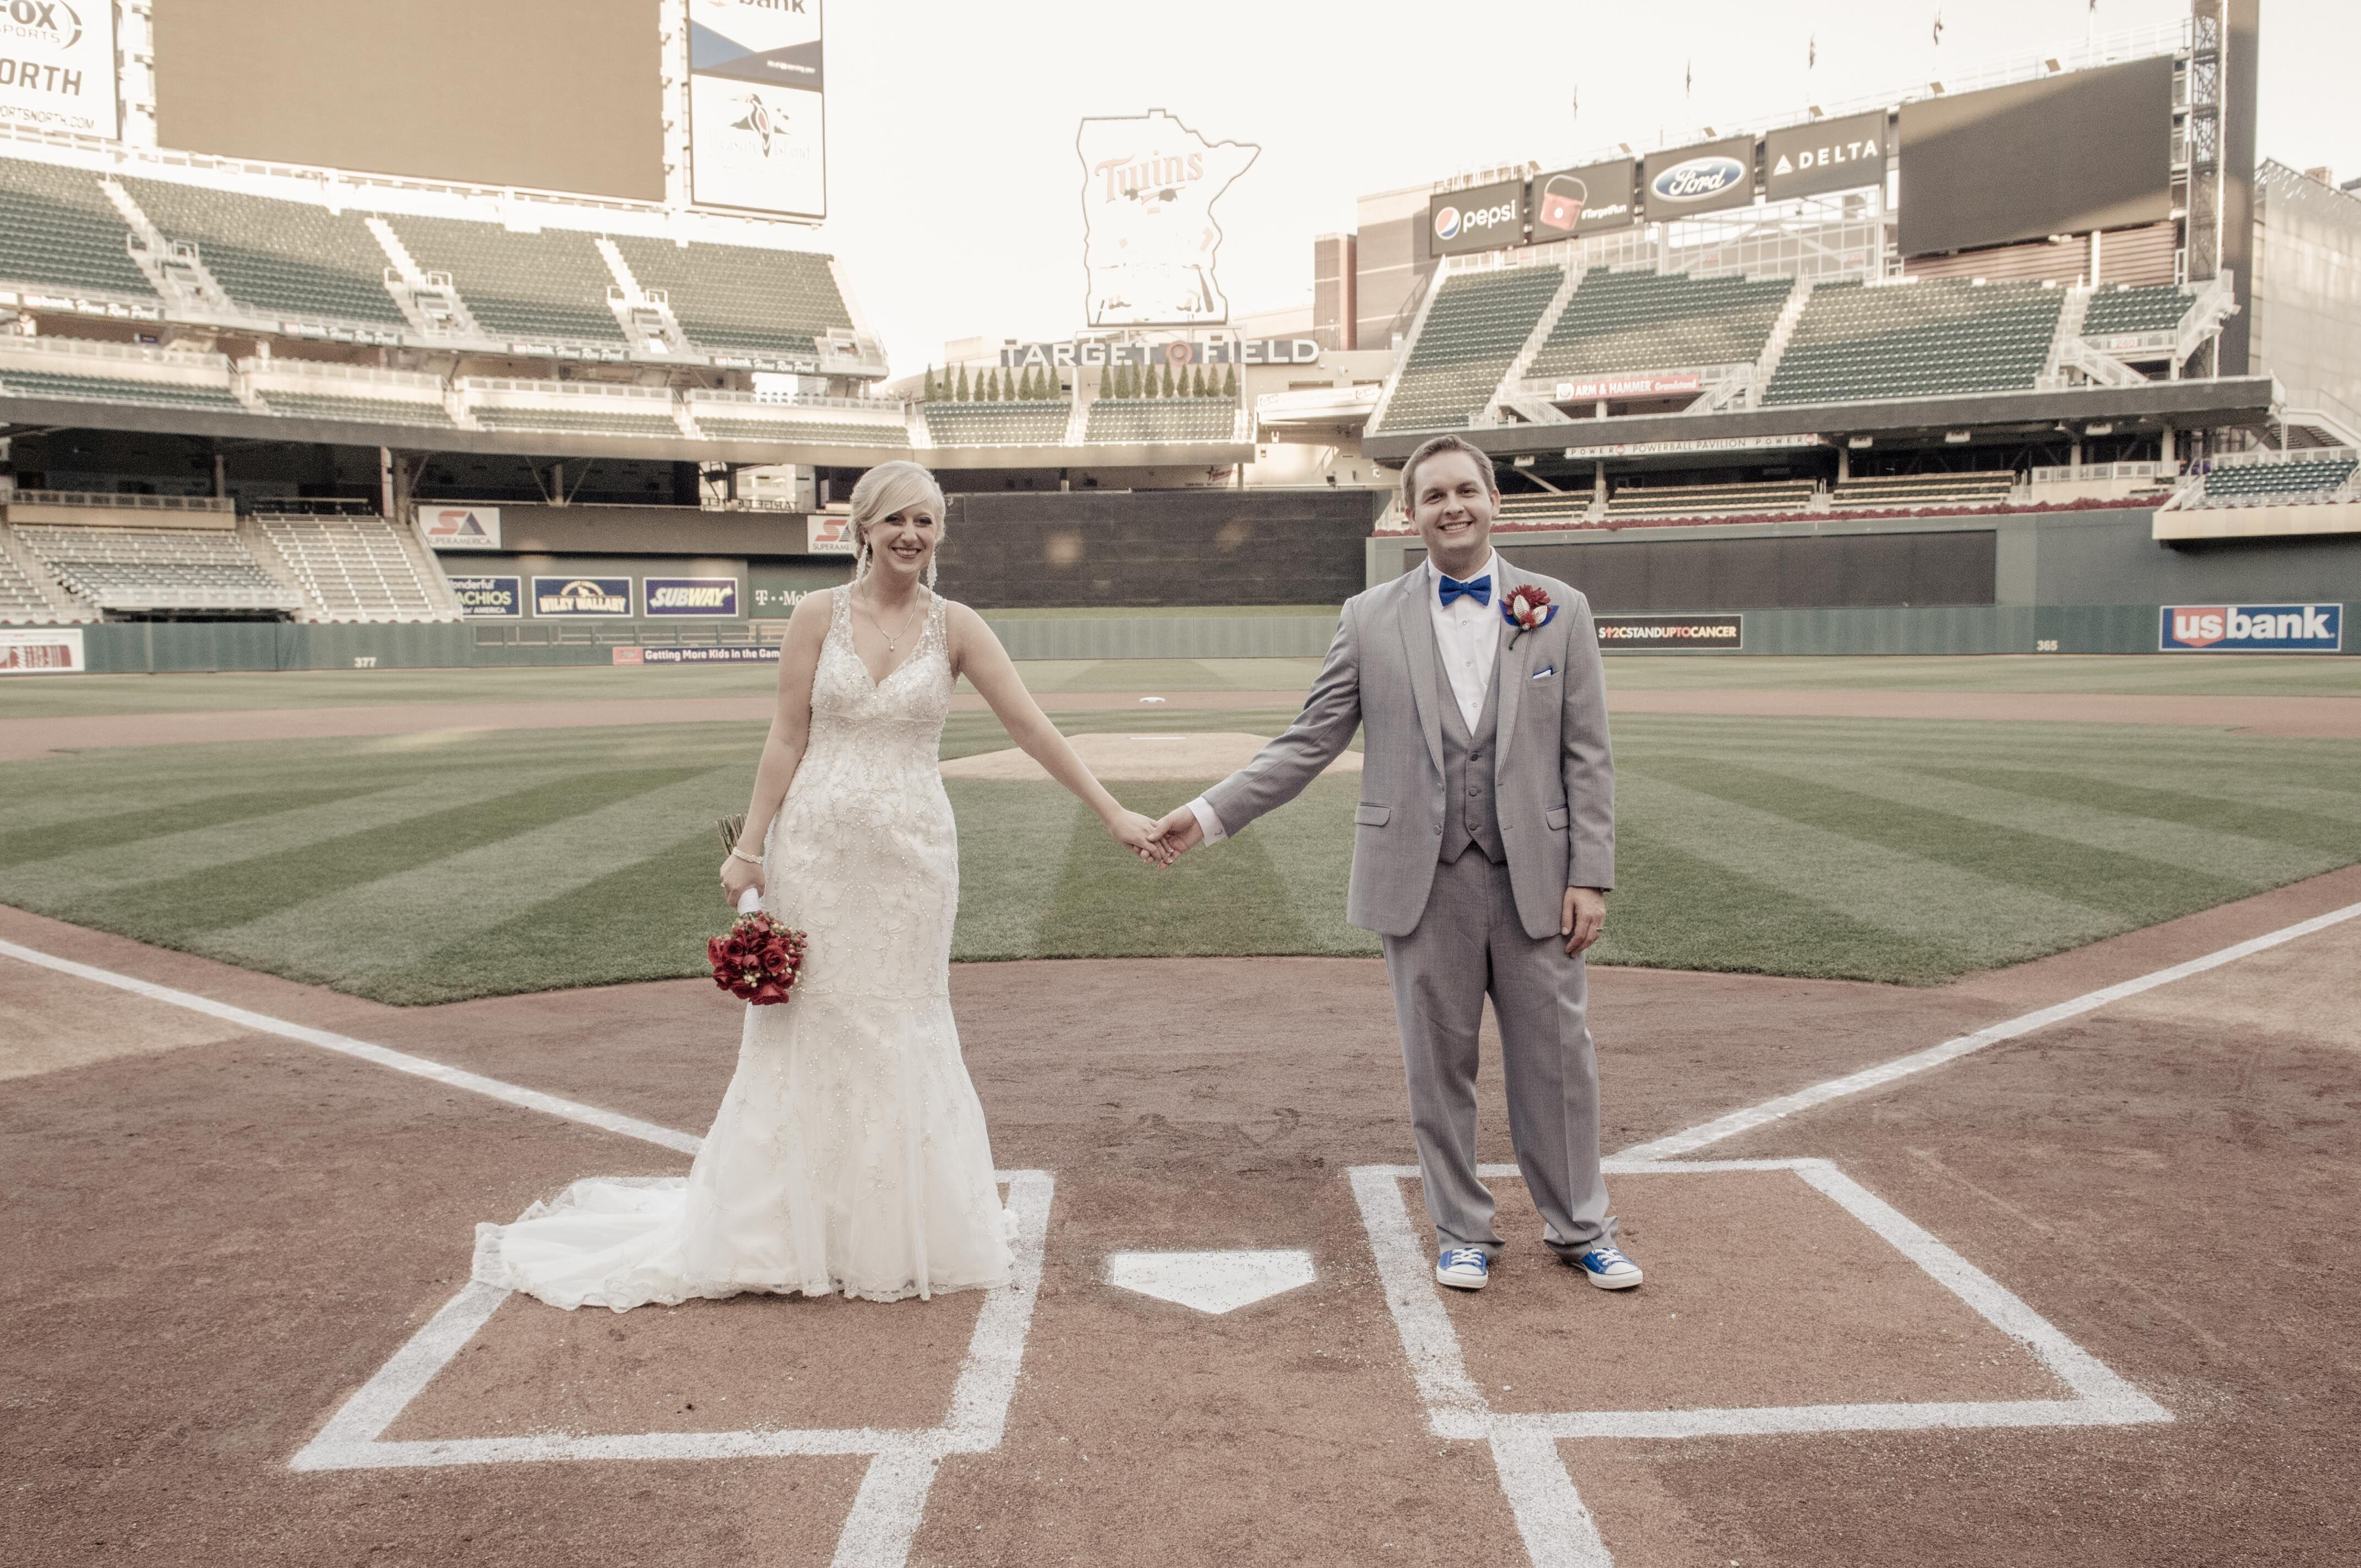 a fun baseball stadium wedding at target field in